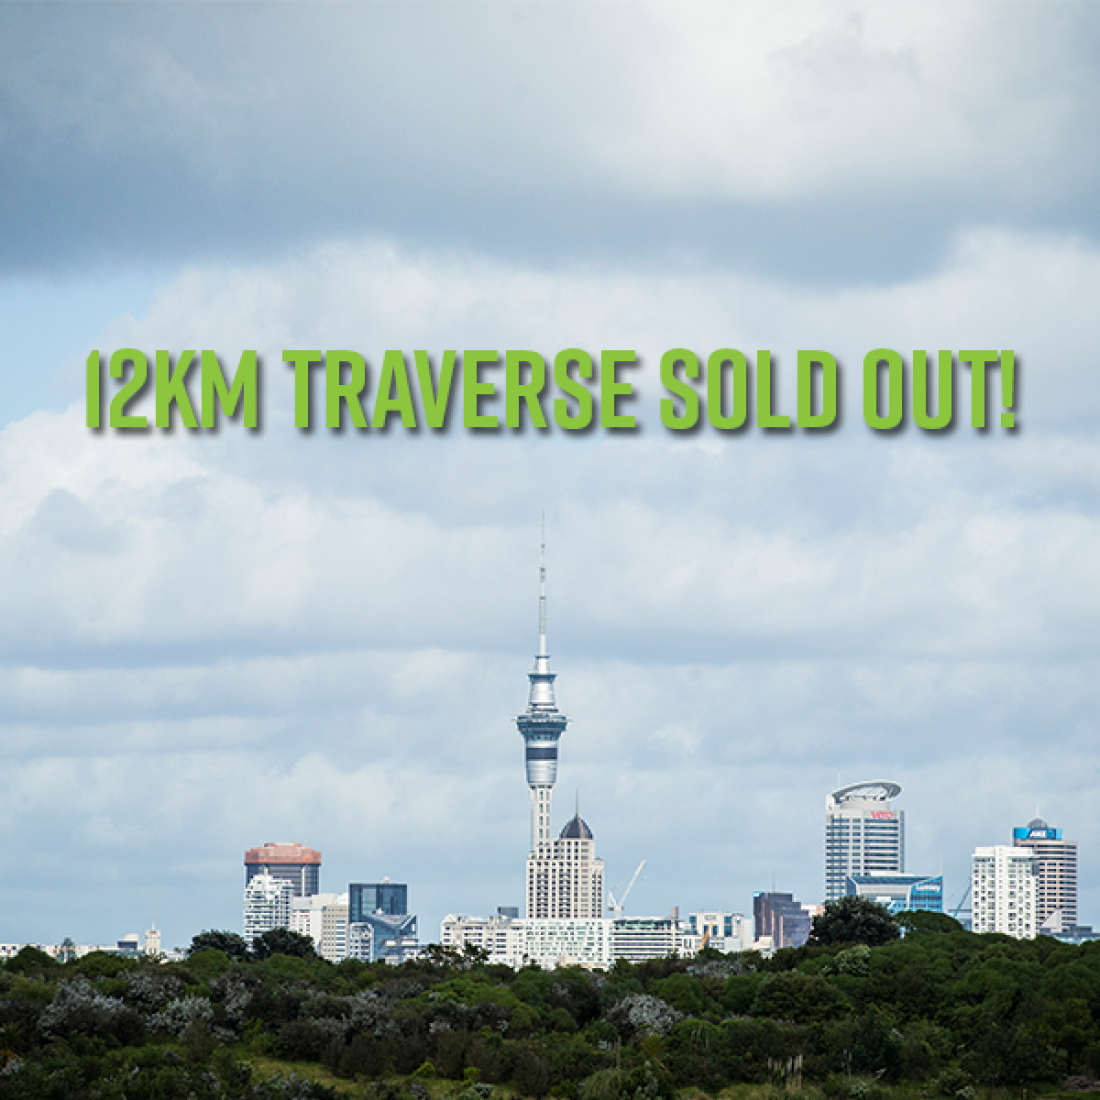 12KM TRAVERSE SOLD OUT